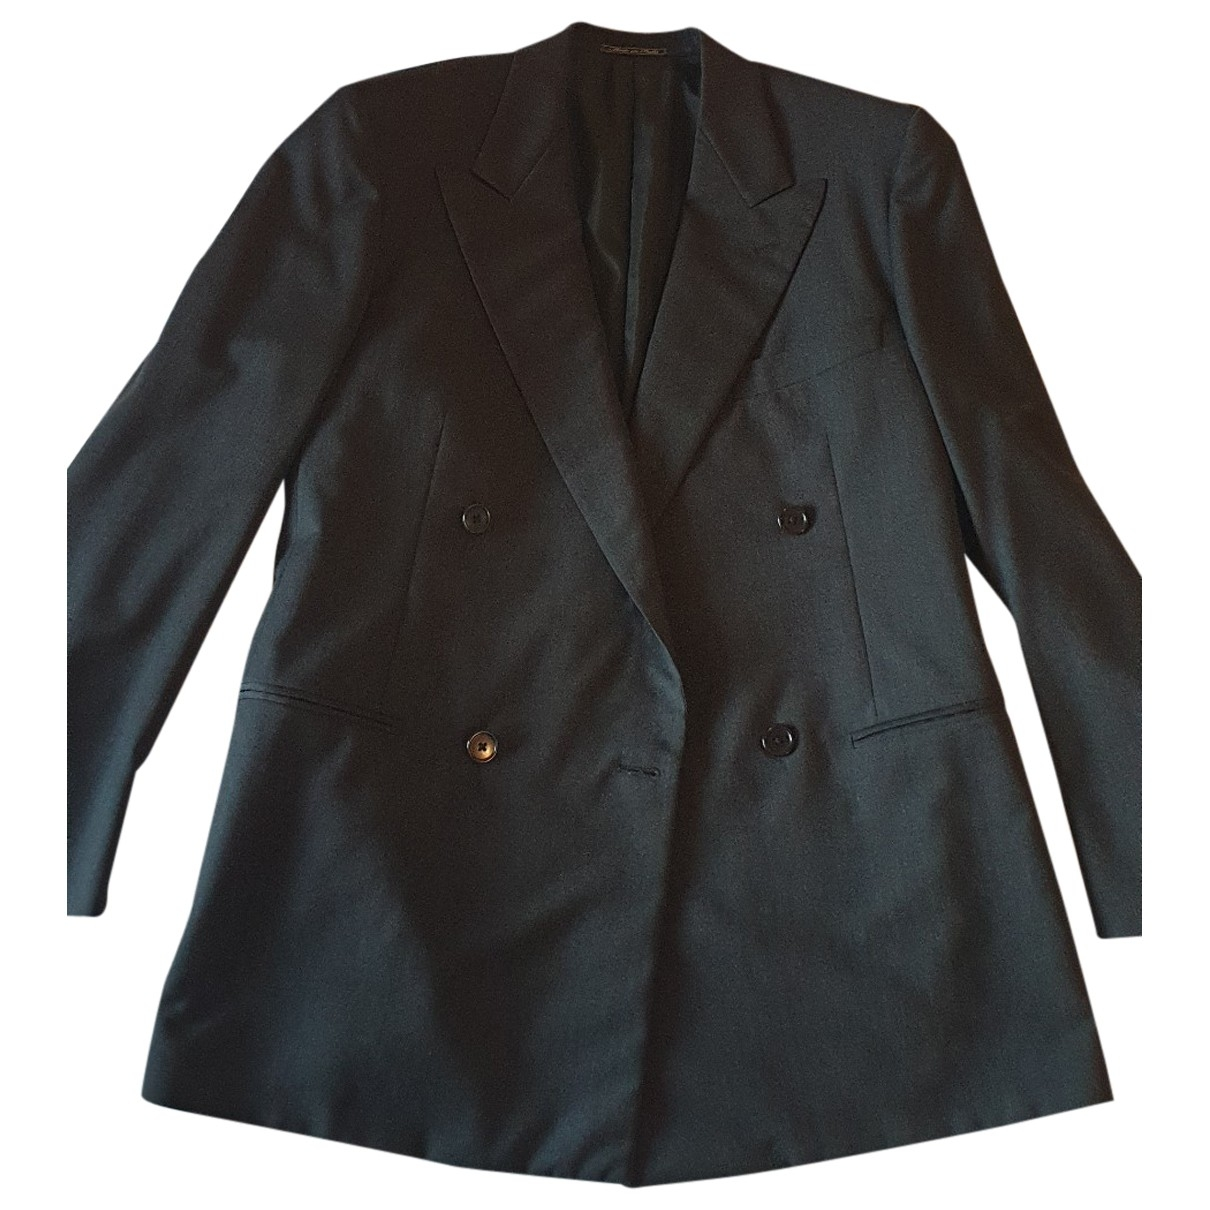 Corneliani \N Anthracite Wool jacket  for Men M International